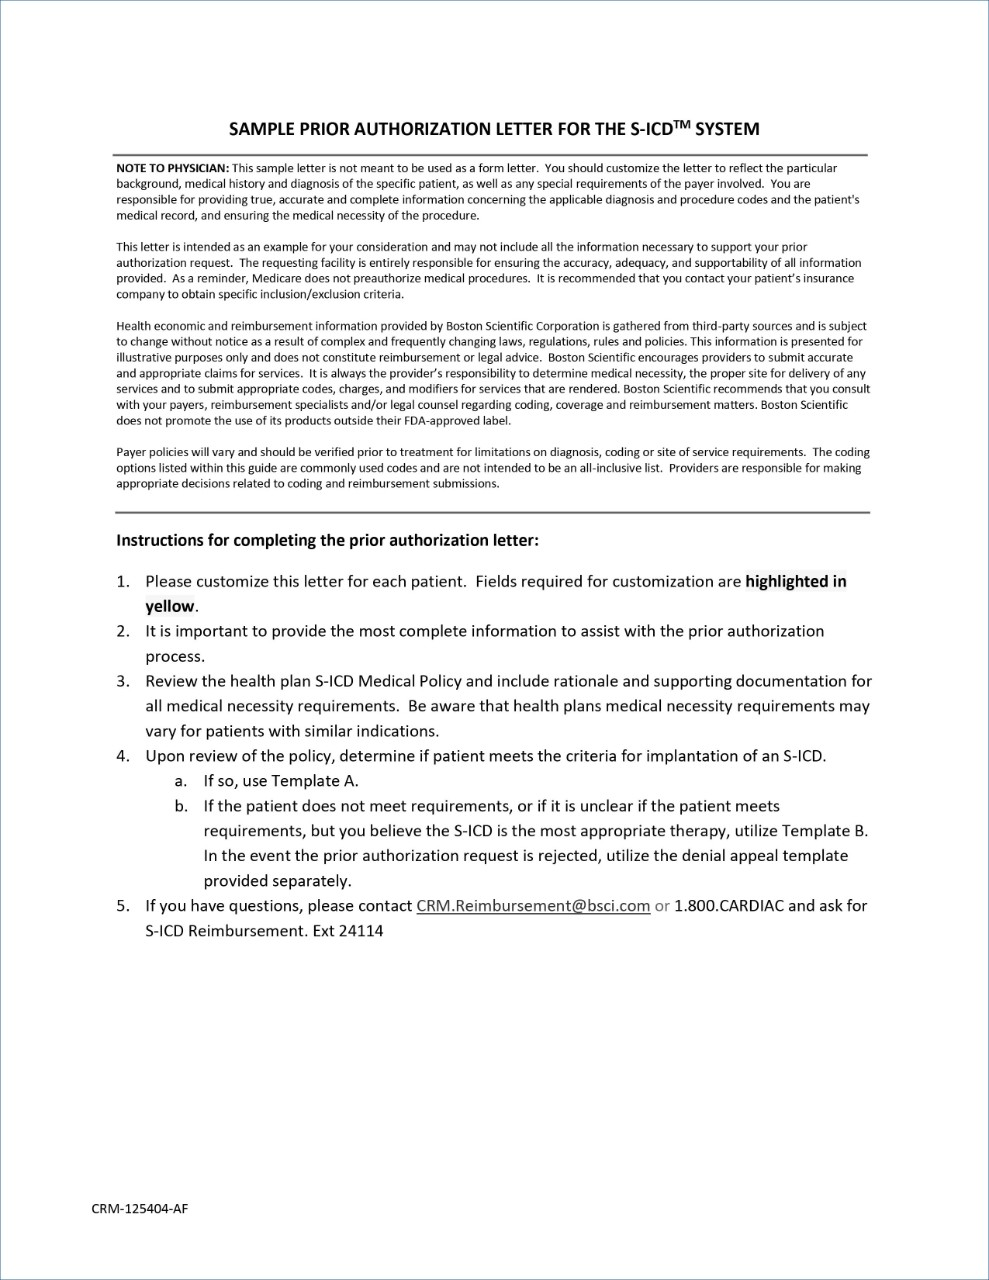 Sample_Prior_Authorization_Letter